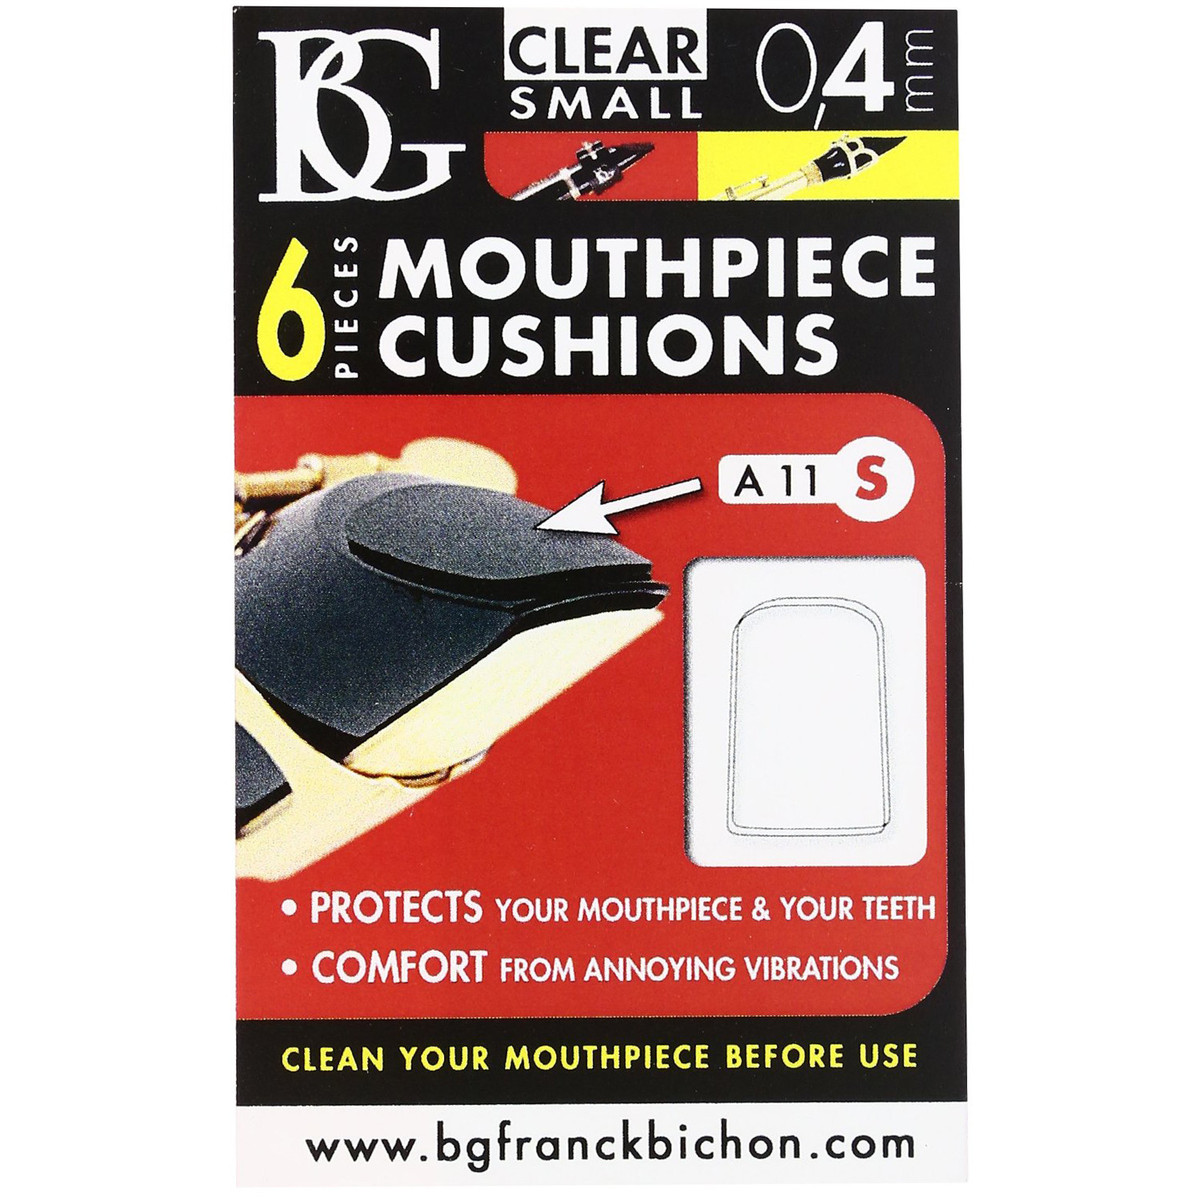 Image of BG Mouthpiece Cushion Sax and Clarinet Small 0.4mm (Pack Of 6)